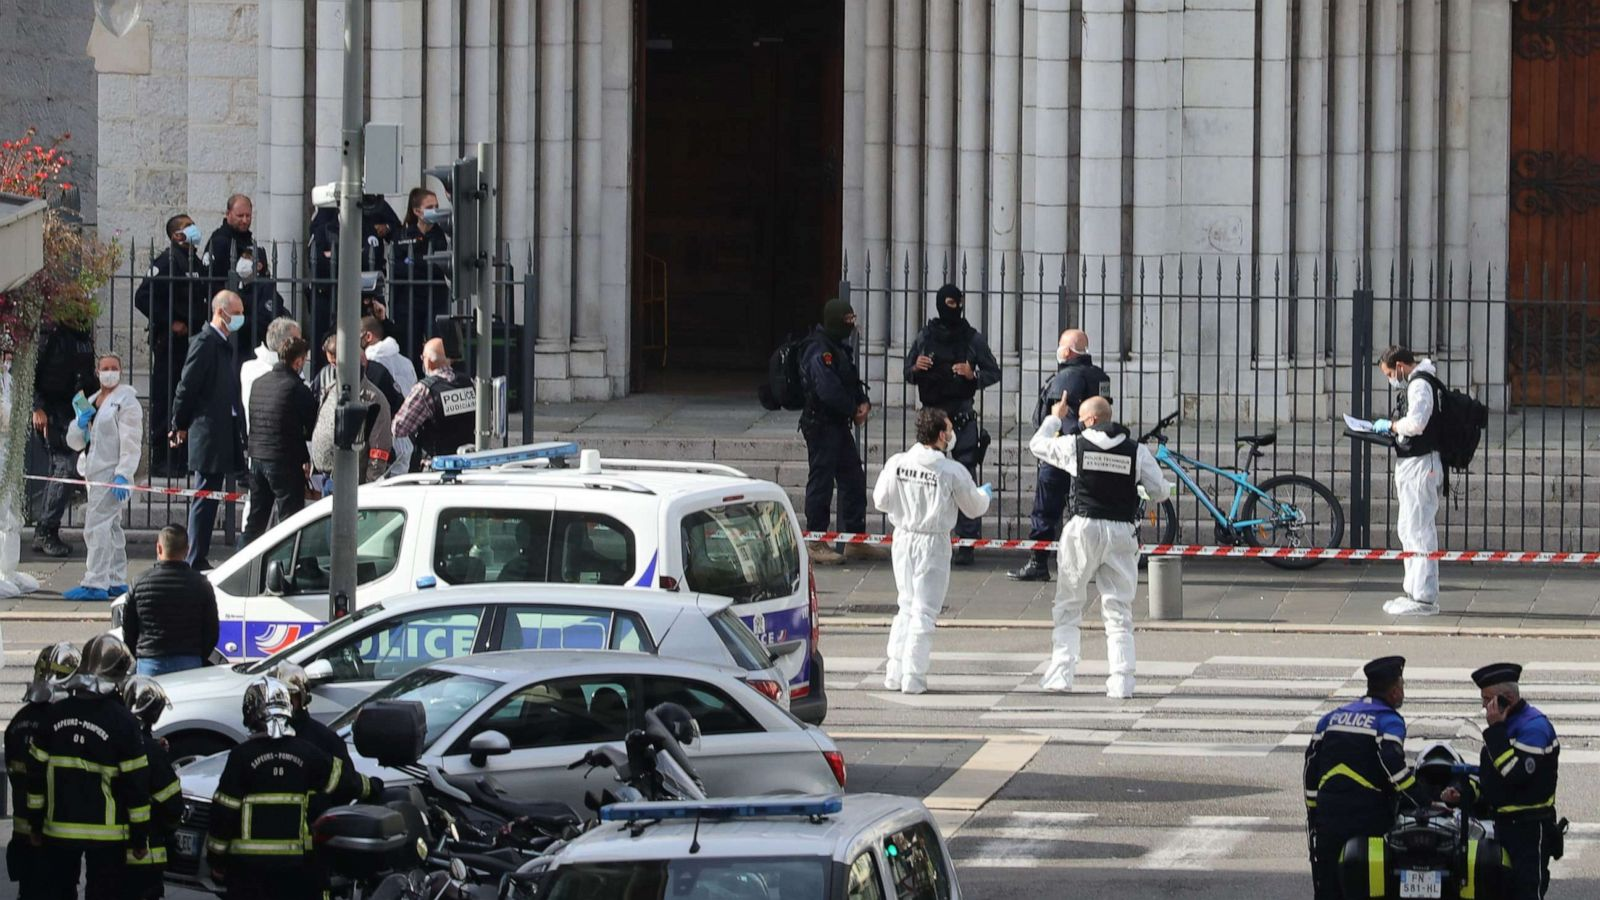 3 people dead following stabbings in France terror attack - ABC News